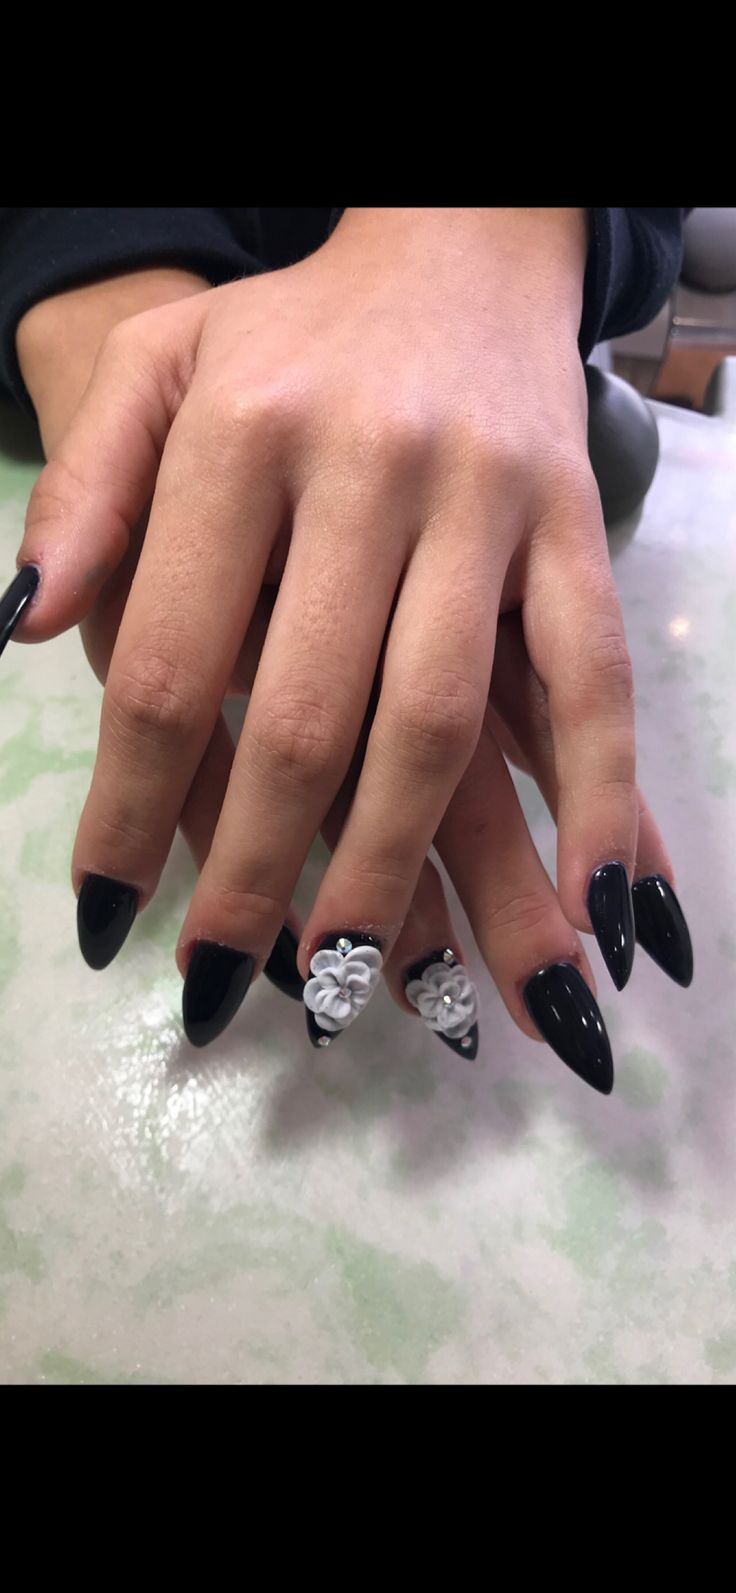 17 best Diva nails 3d design images on Pinterest | Diva nails, 3d ...